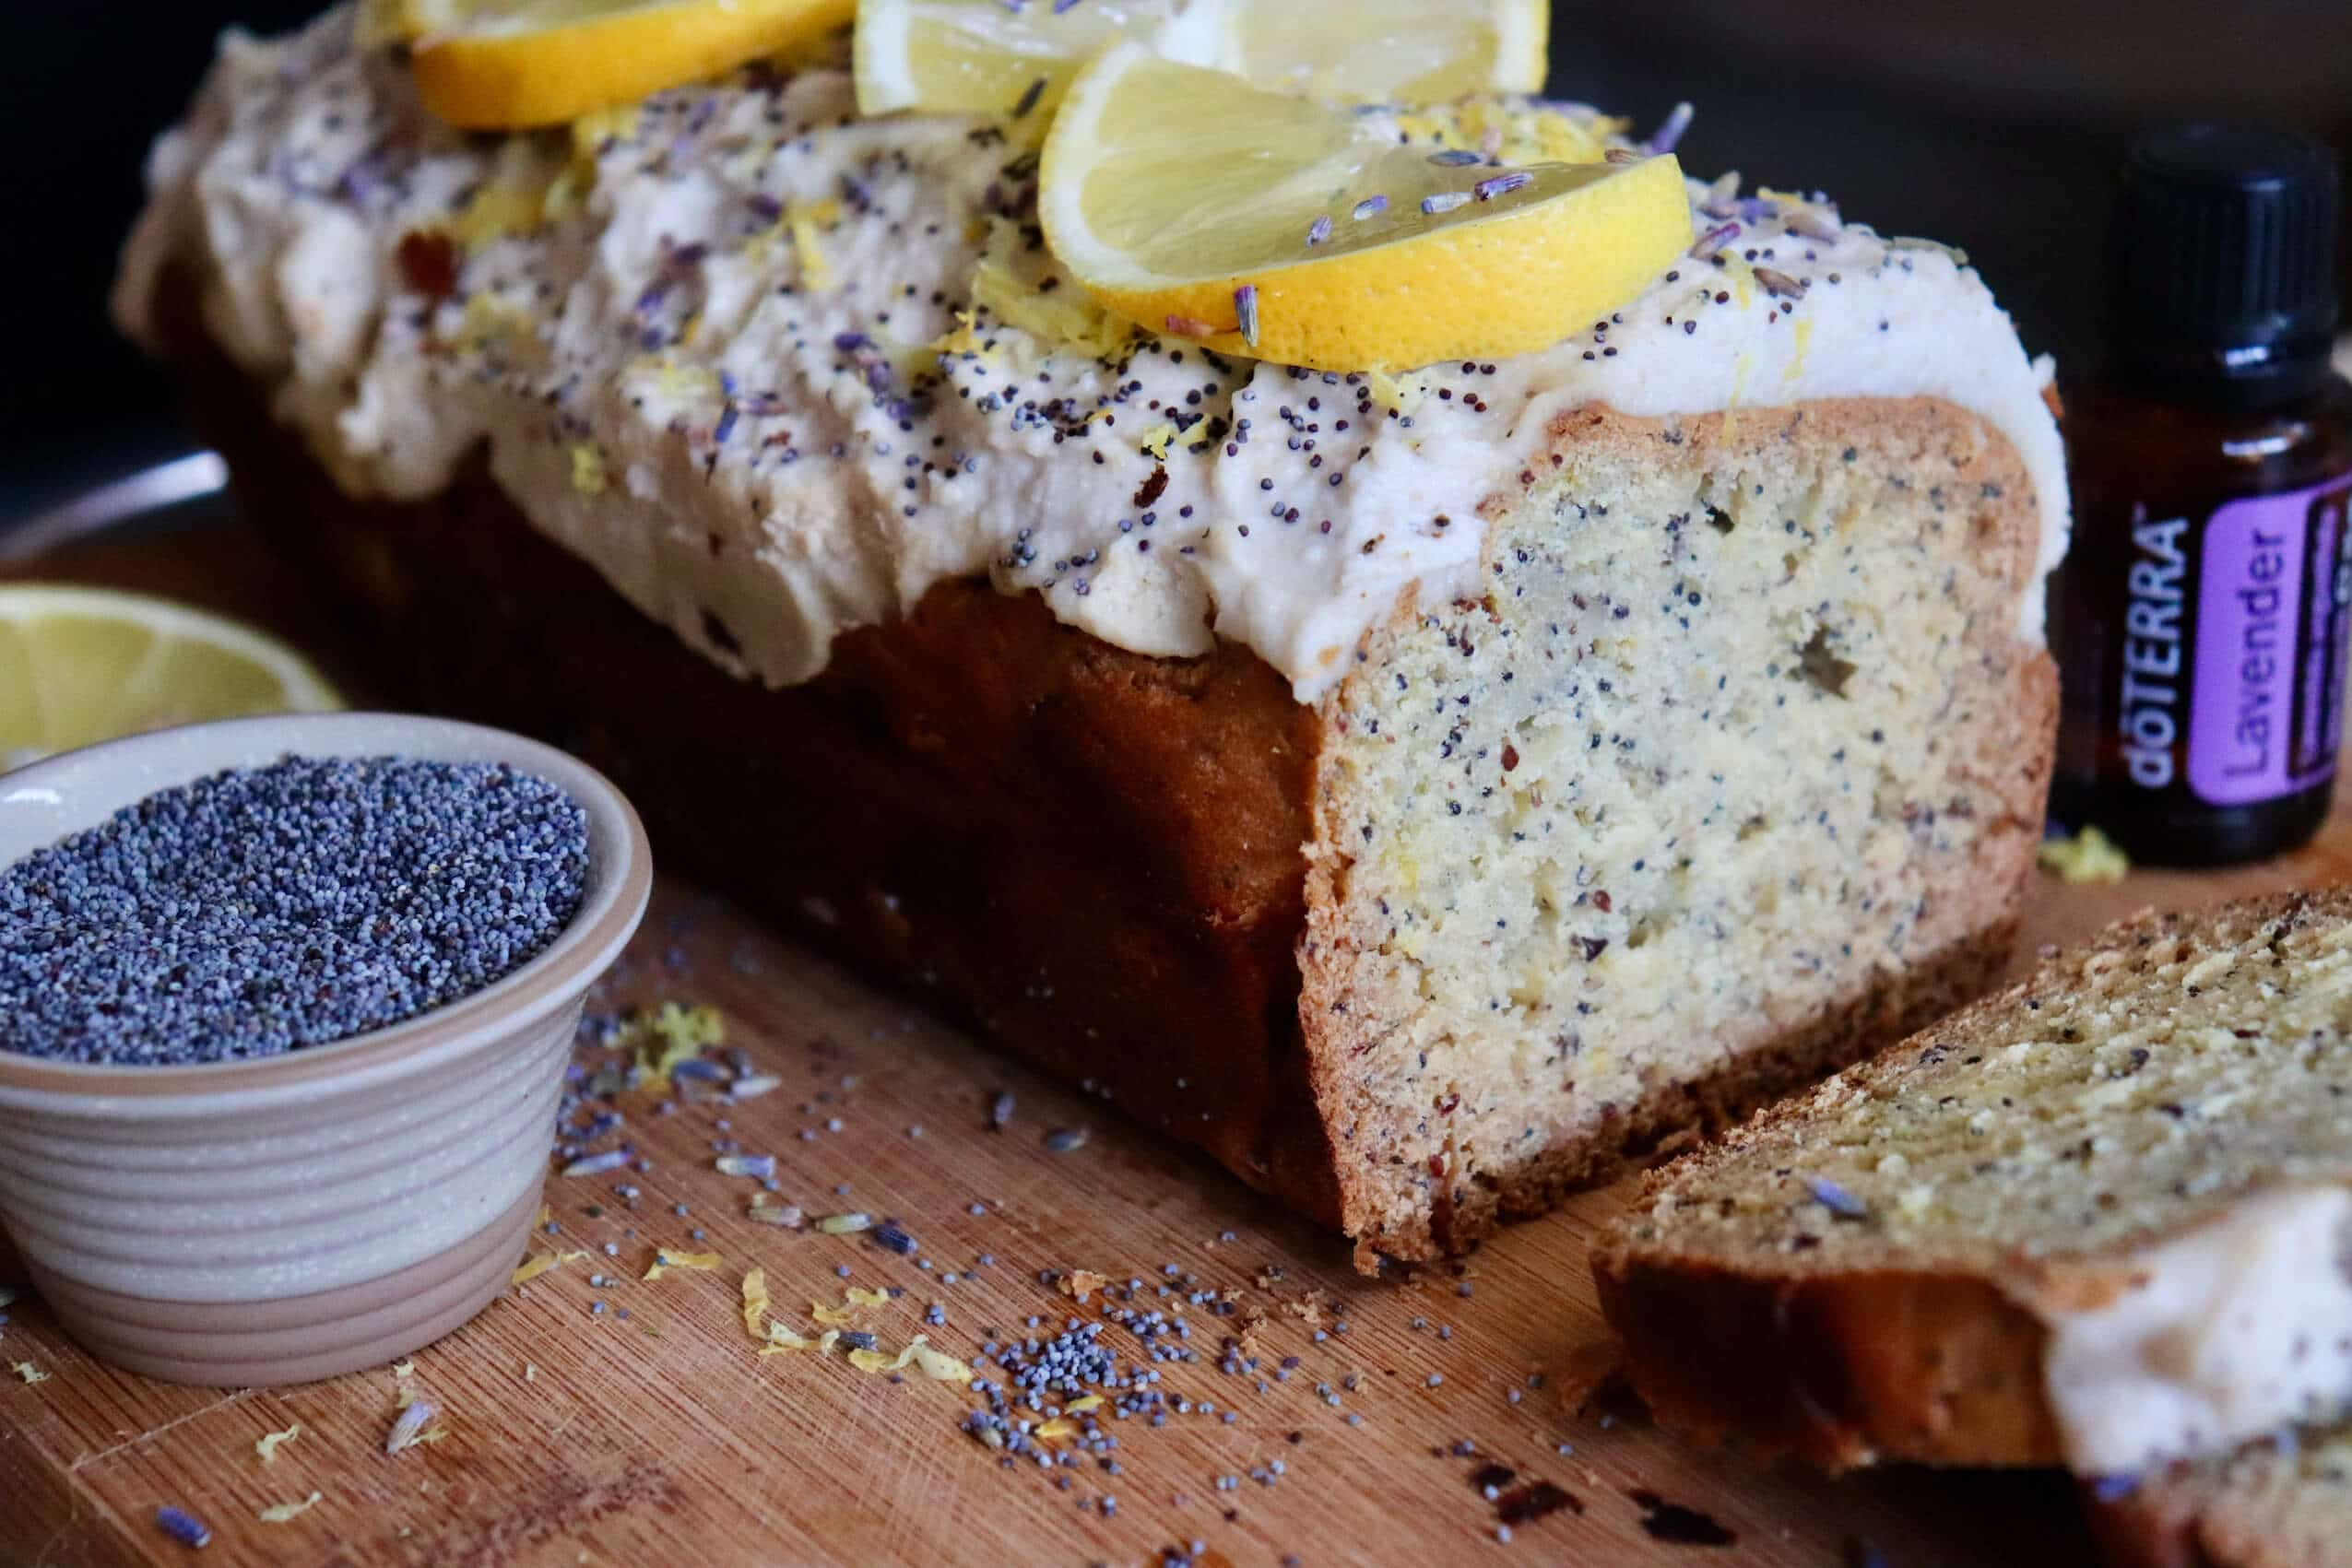 Vegan Lemon & Poppy Seed cake